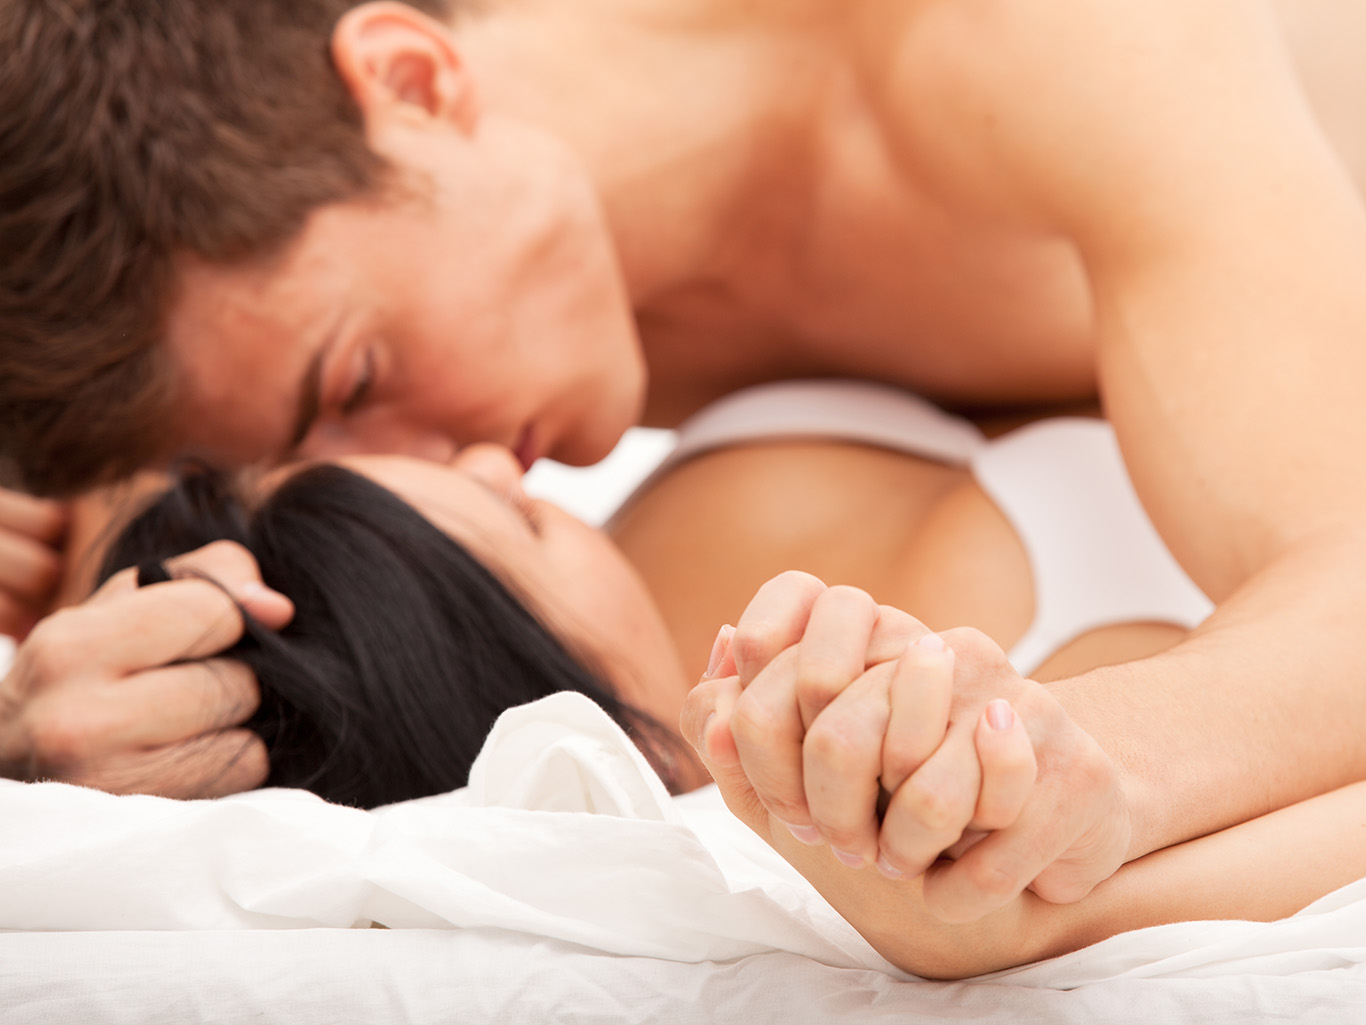 The mermaid sex position is the move couples are loving these days here's how to it